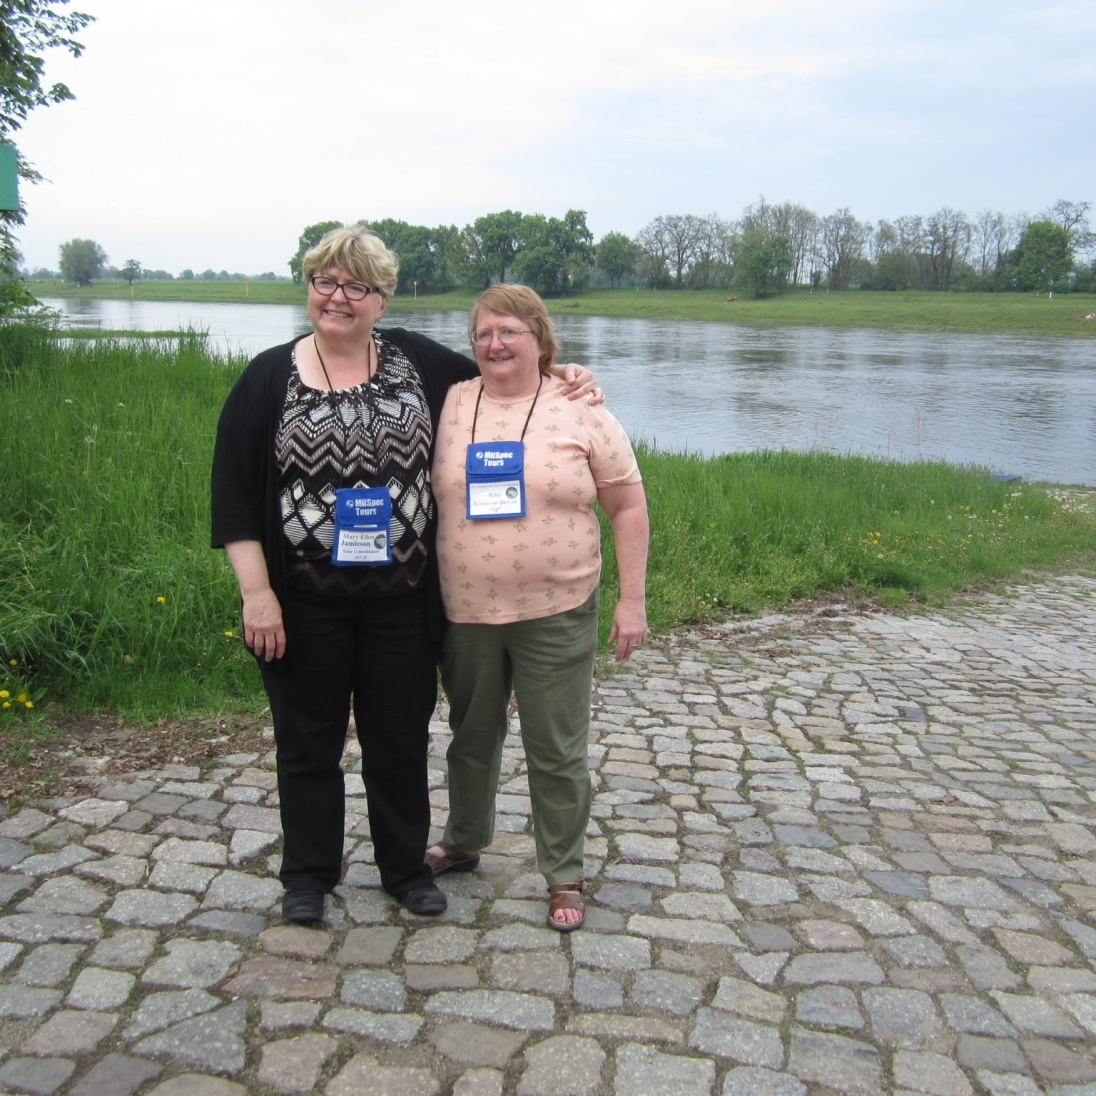 Mary and Julia at the Elbe River crossing (not the Mulde).